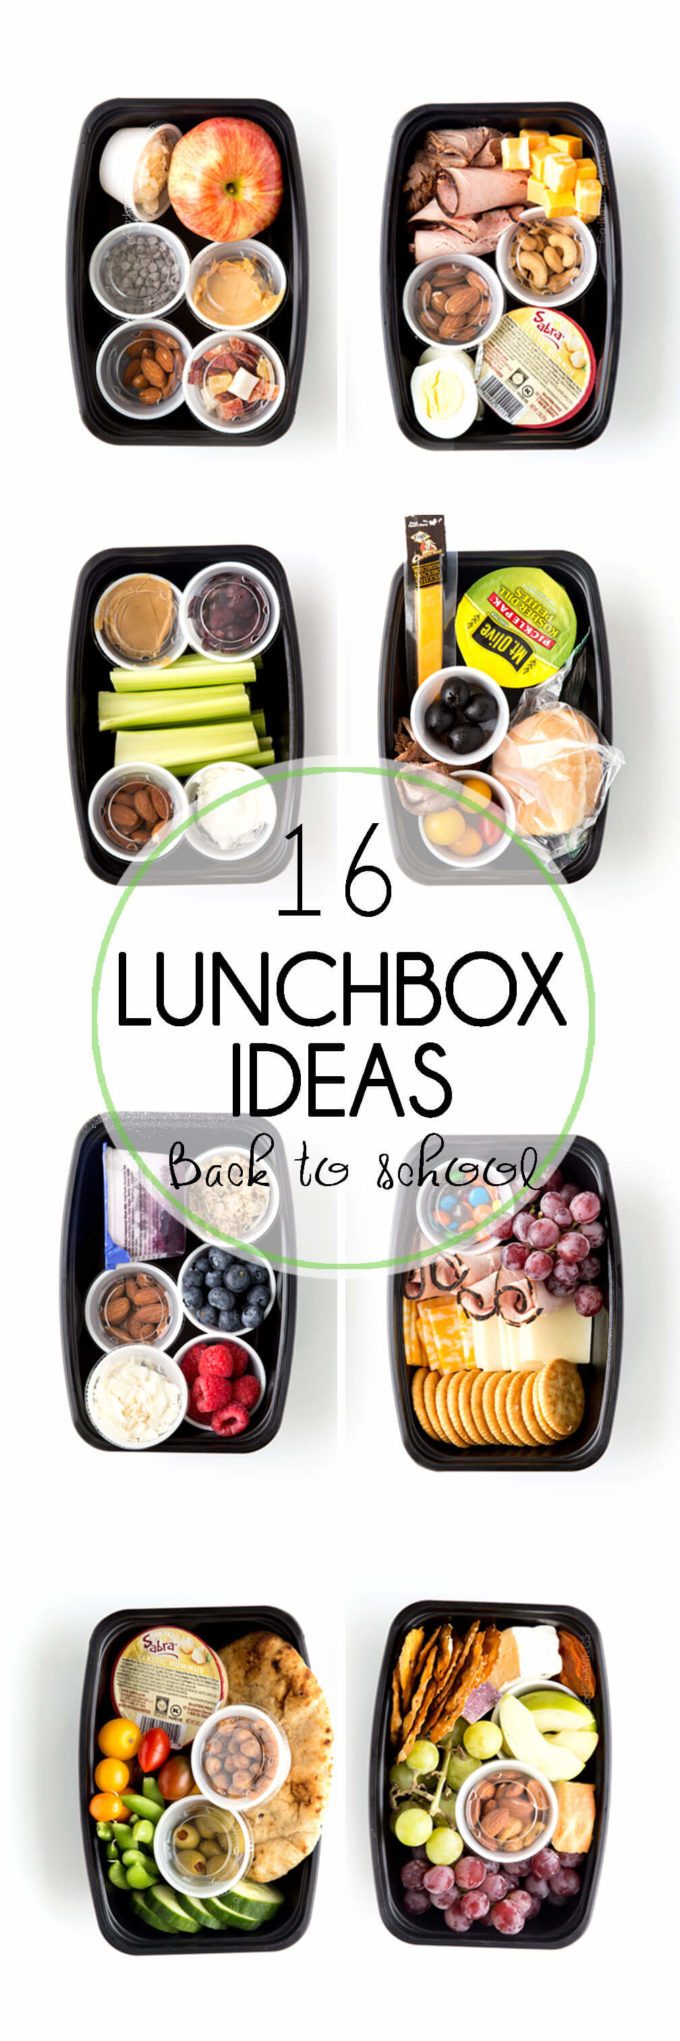 Lunchbox ideas for back to school that adults will want to eat too.